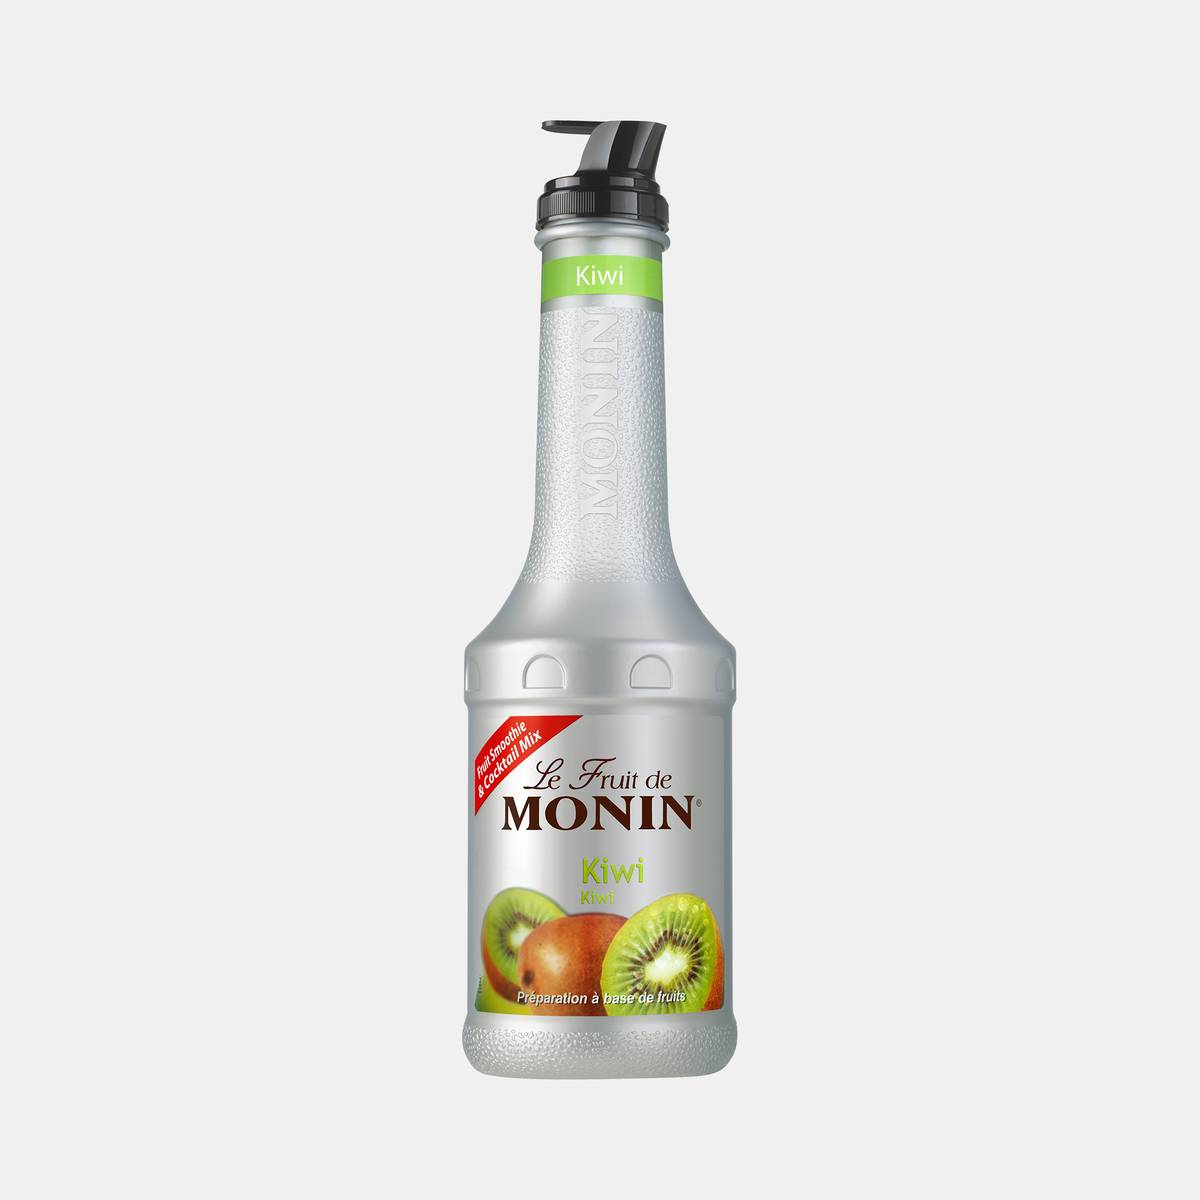 Monin Kiwi Puree Fruit Mix 1 Liter Bottle